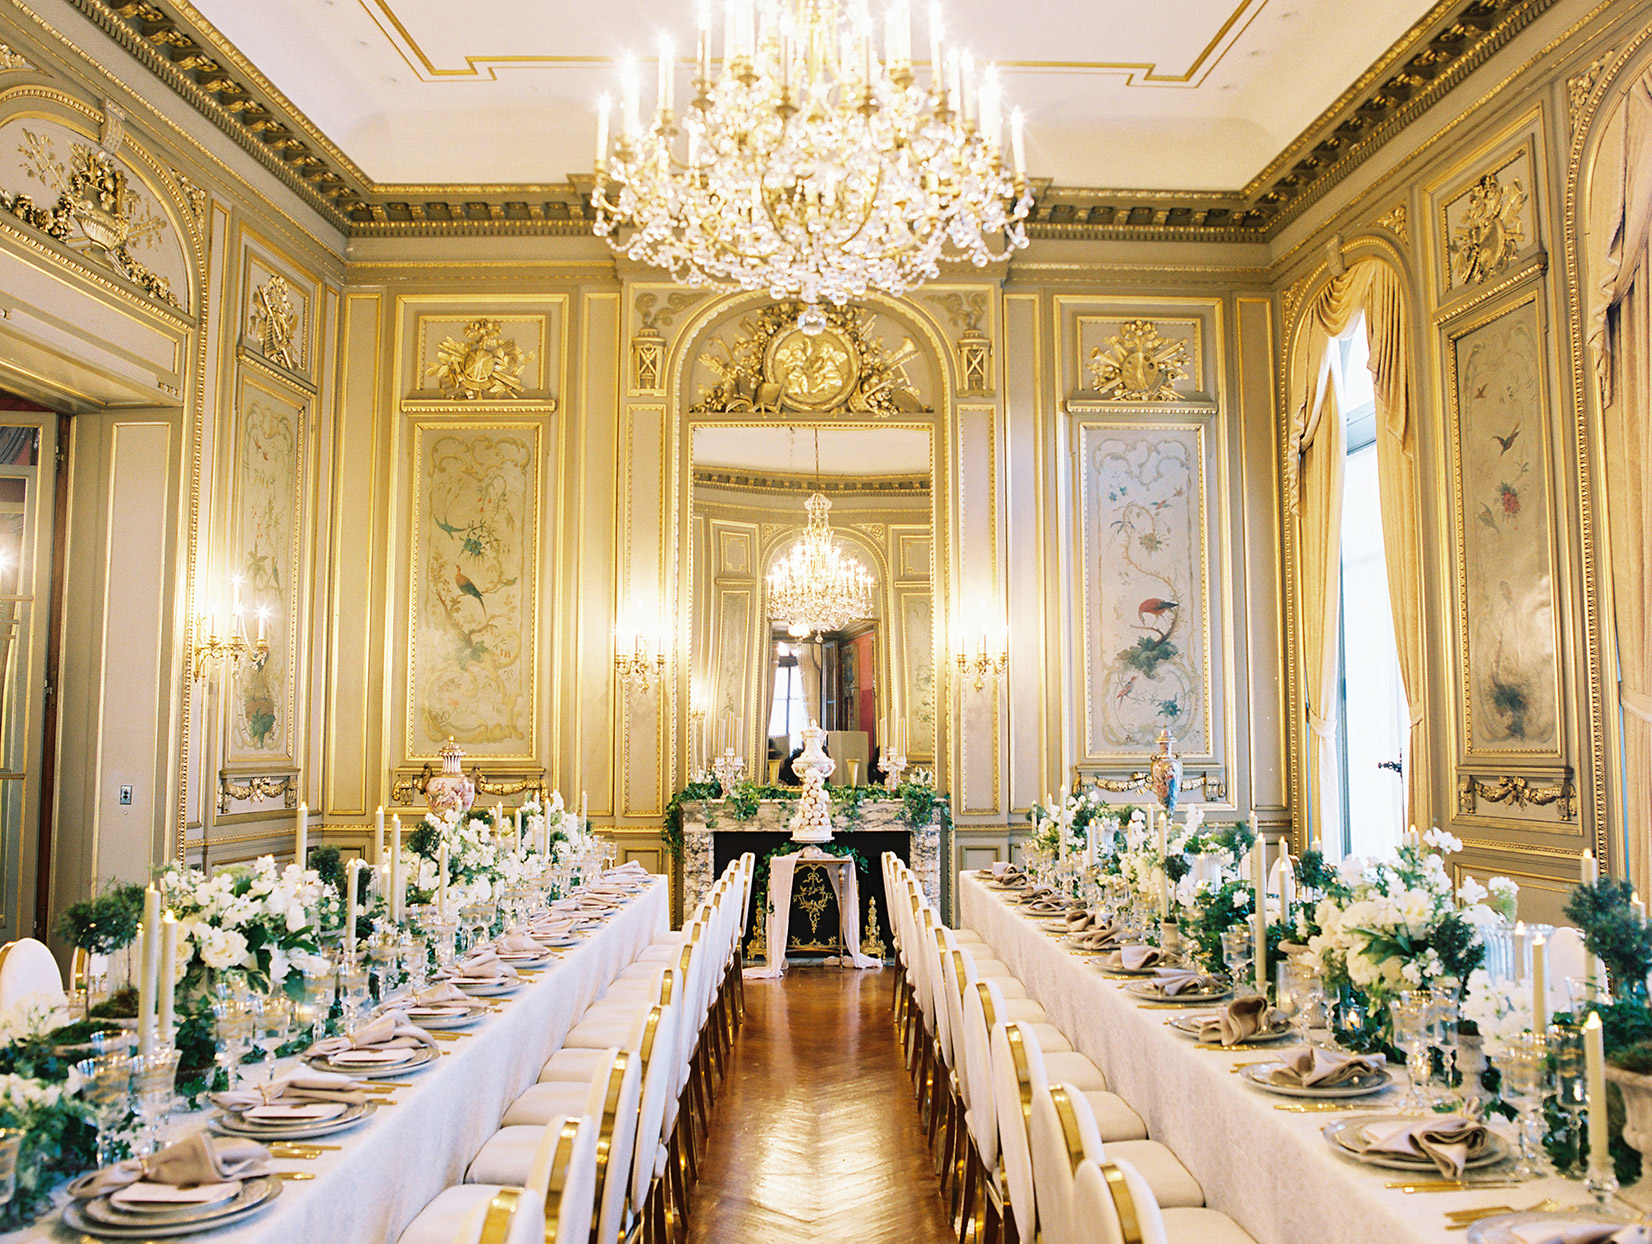 long tables with white linens at wedding reception